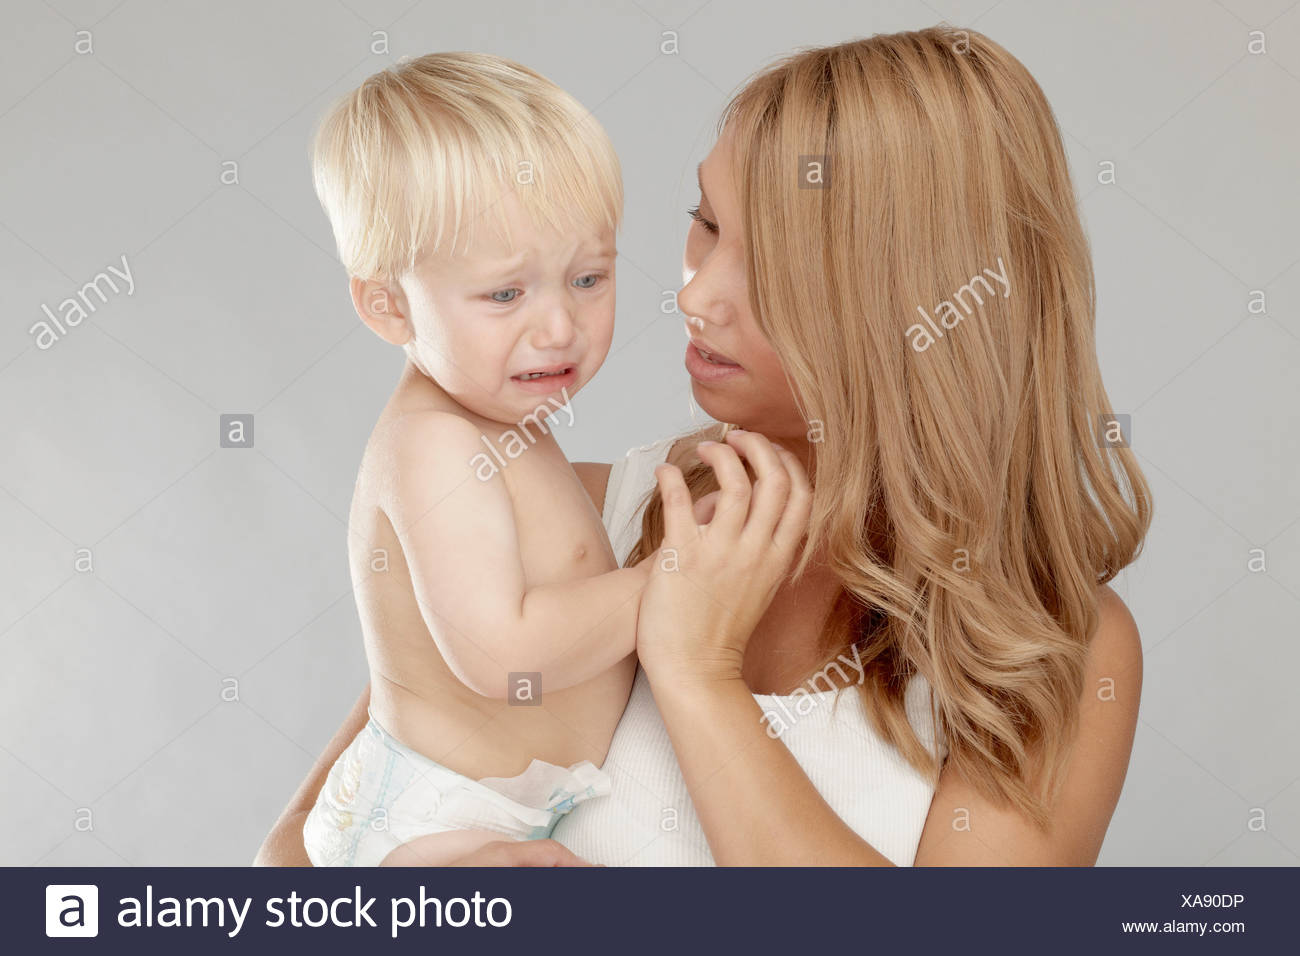 Mother holding crying baby boy - Stock Image